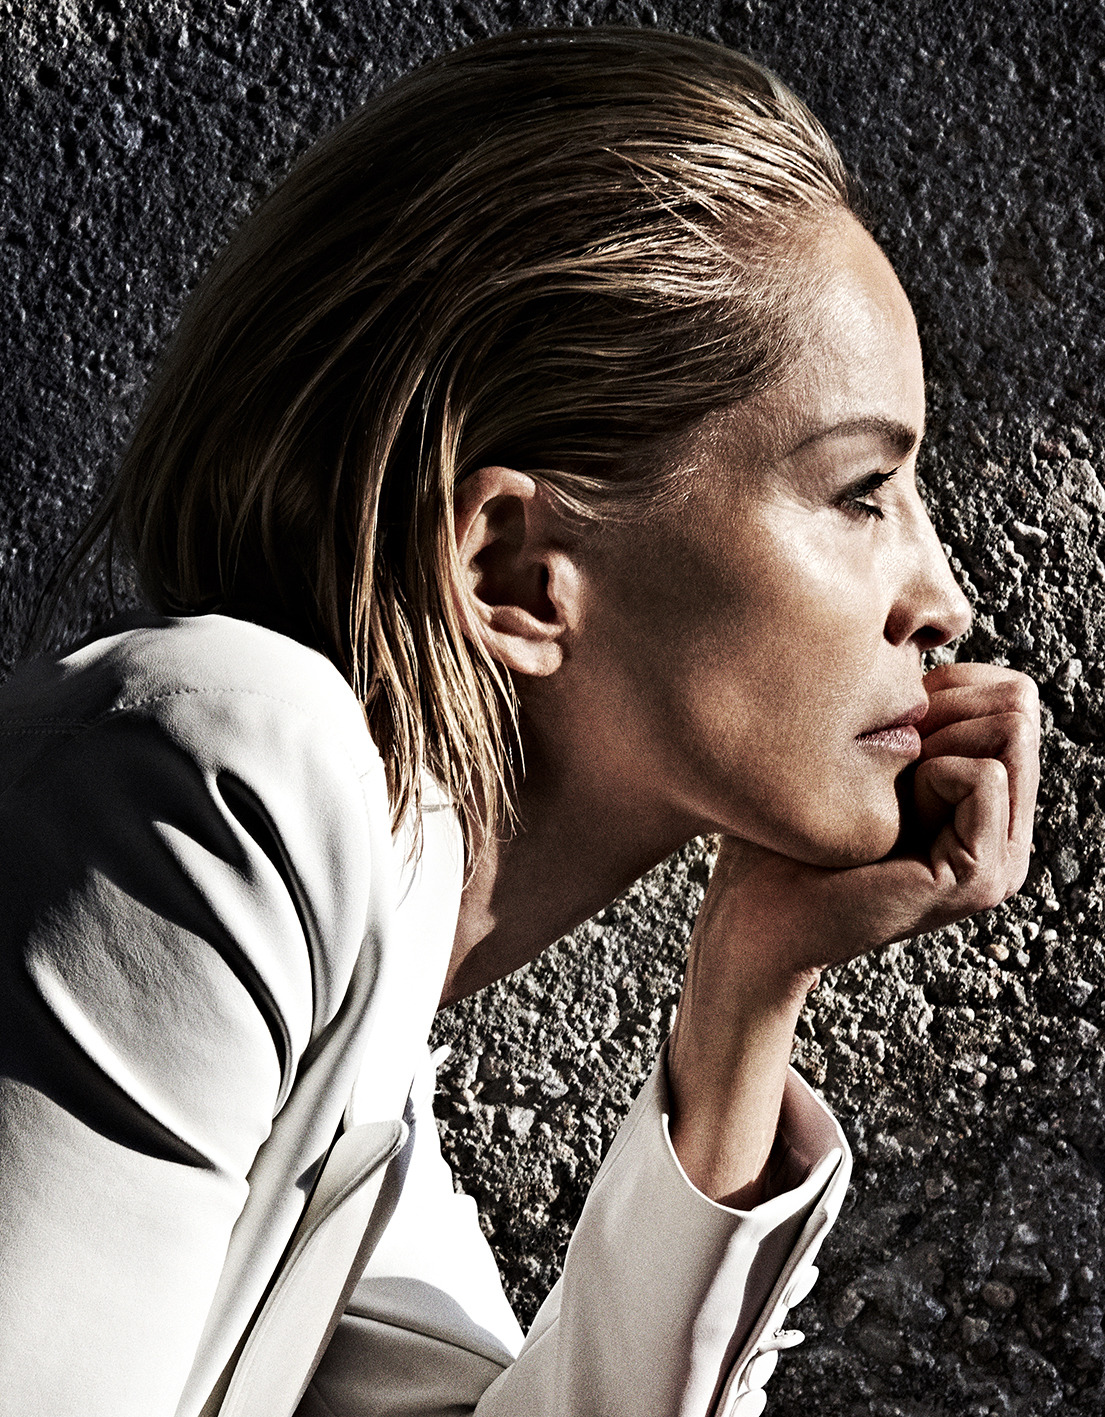 Sharon Stone Delivers Unusual Frank Assessment of Hollywood Men For Vogue Portugal